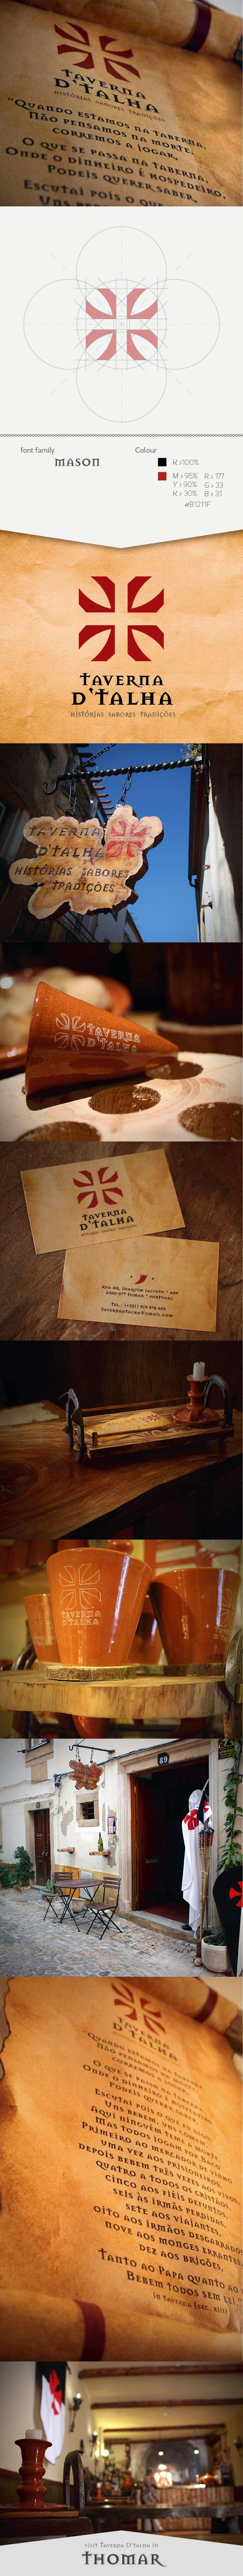 Taverna D'Talha on Behance